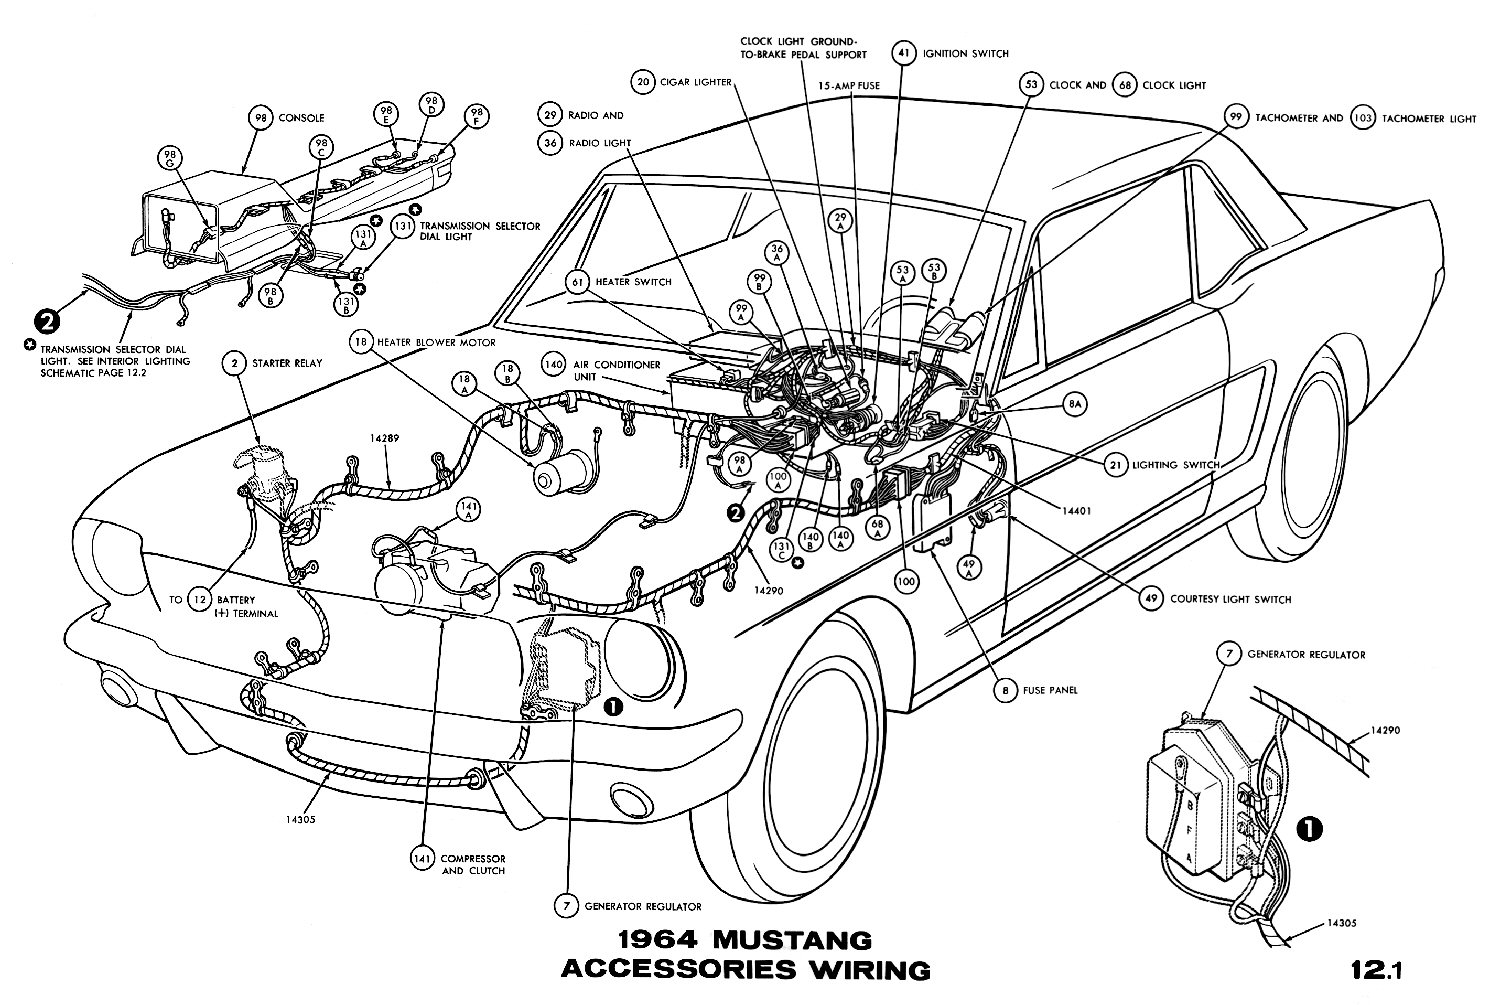 1964 Mustang Wiring Diagrams Average Joe Restoration 1948 Ford F1 Panel Diagram Accessories Pictorial Or Schematic